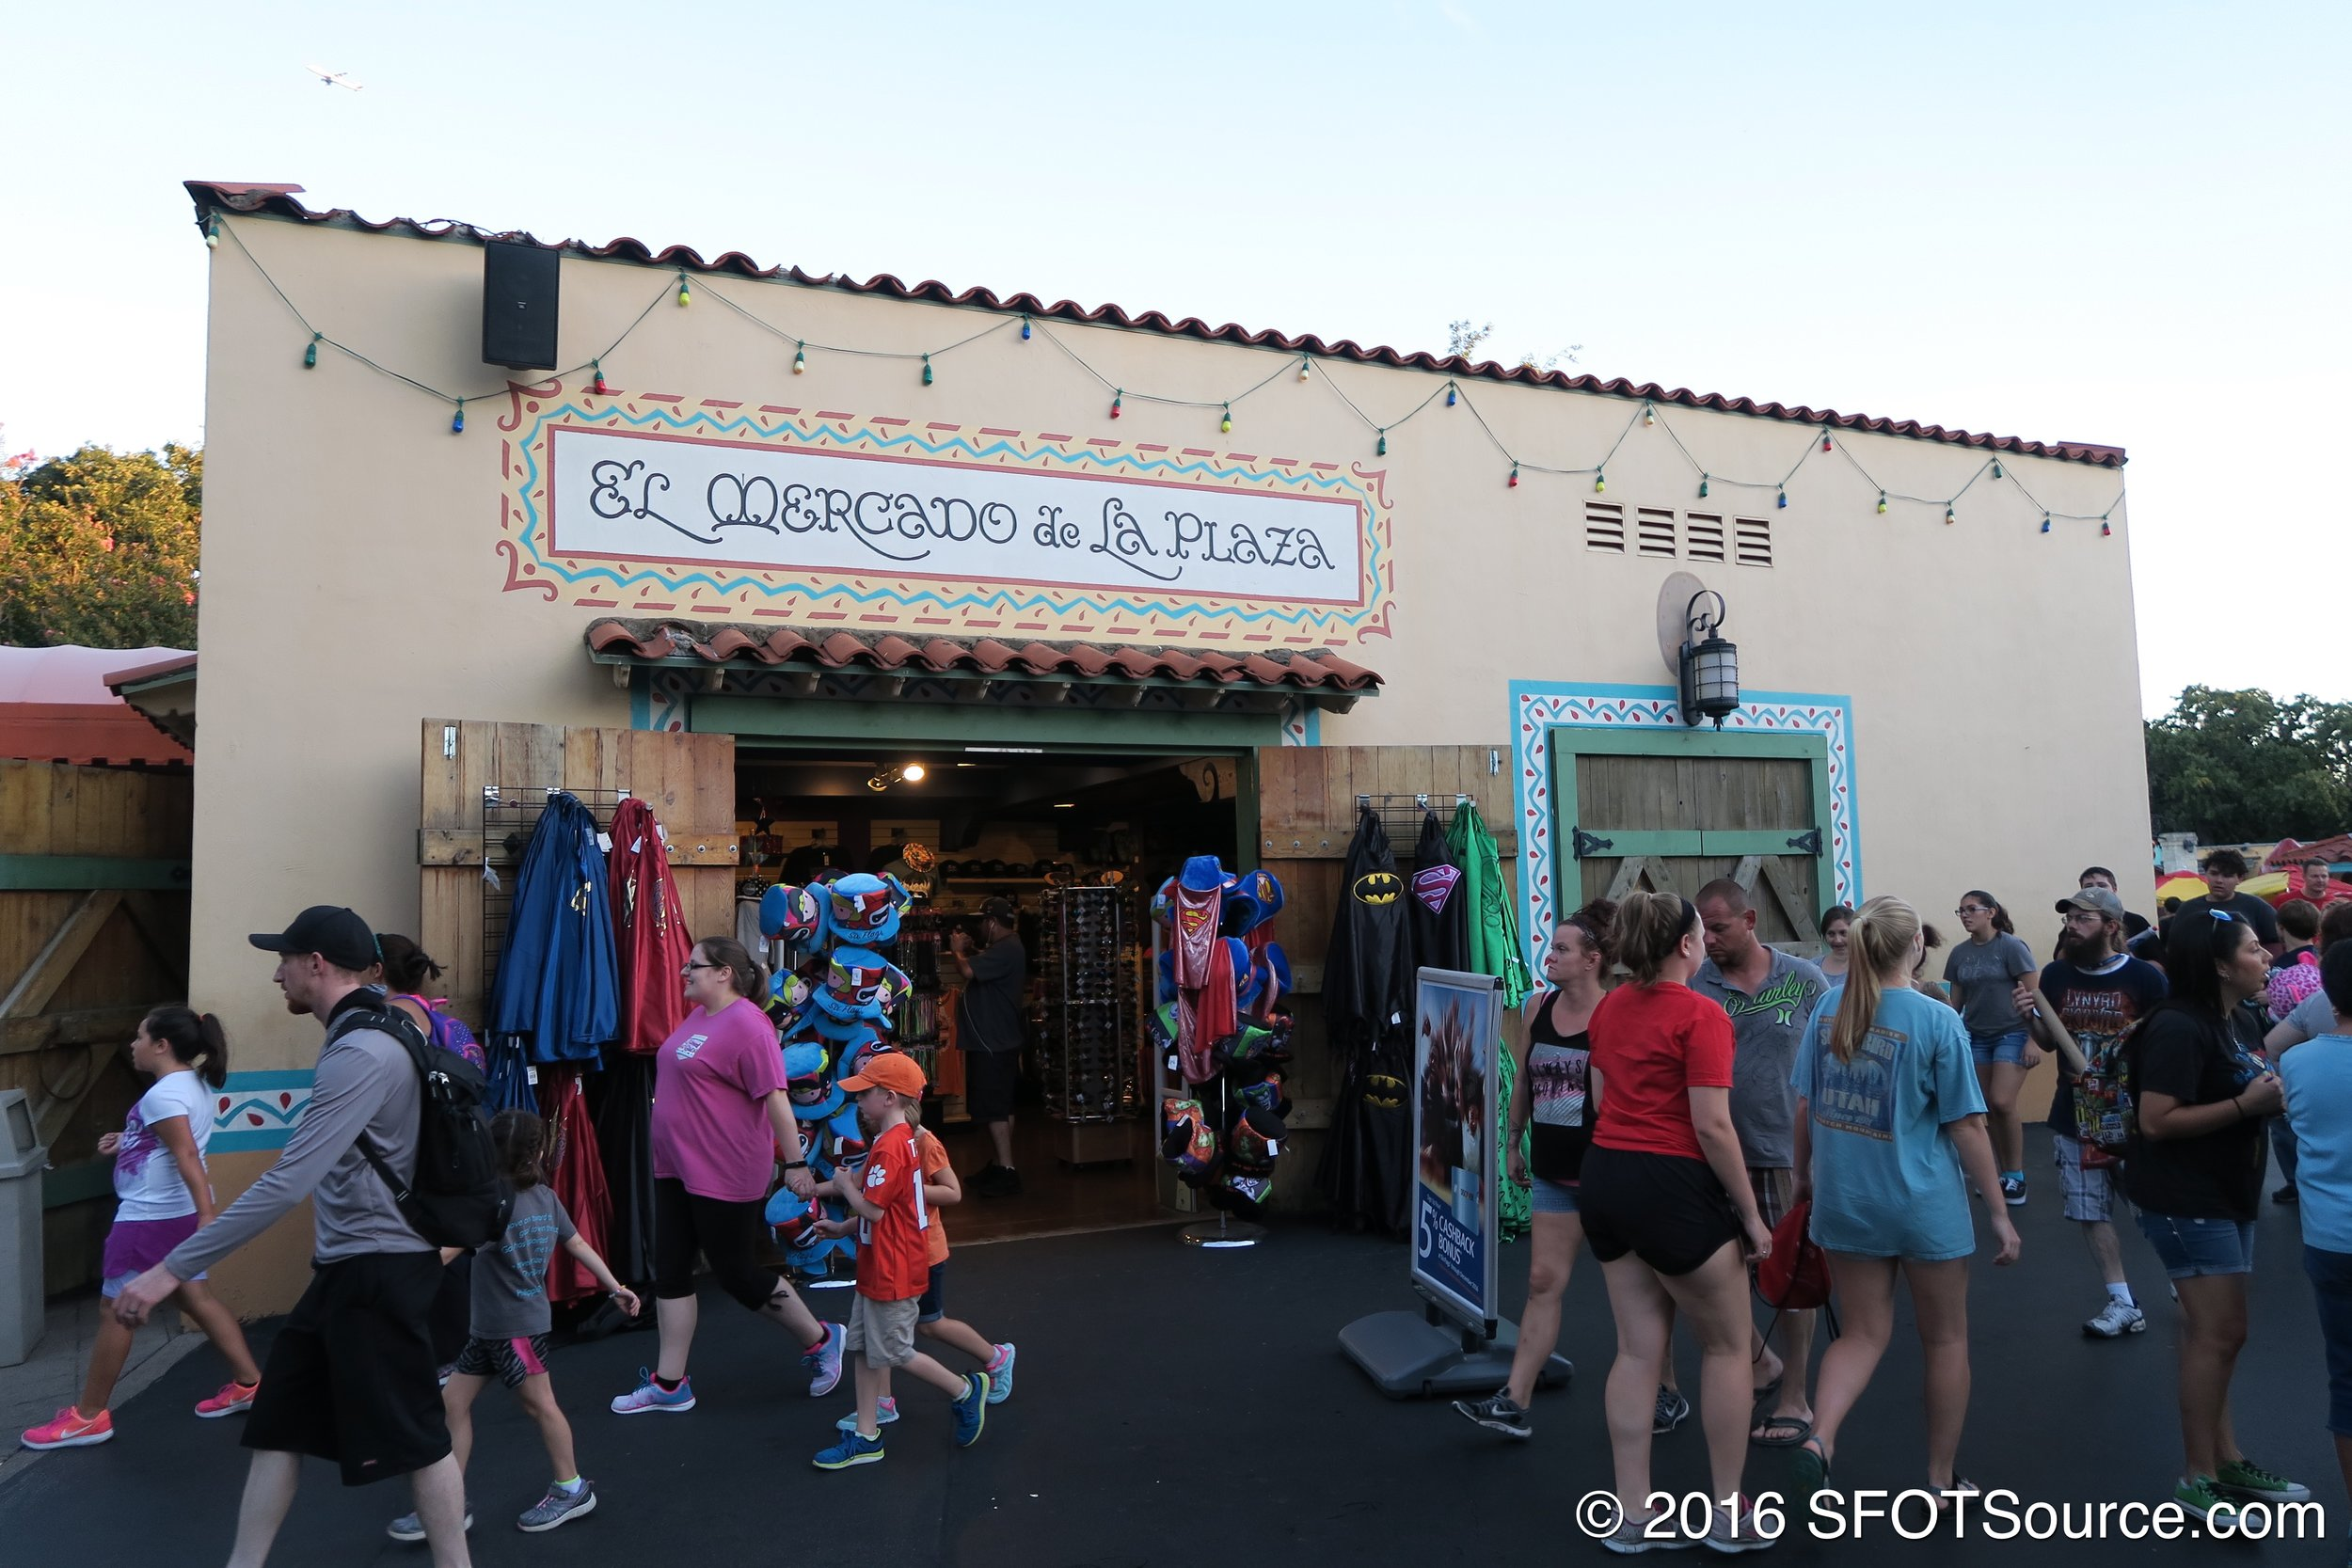 El Mercado is located in the park's Mexico section near front gate.